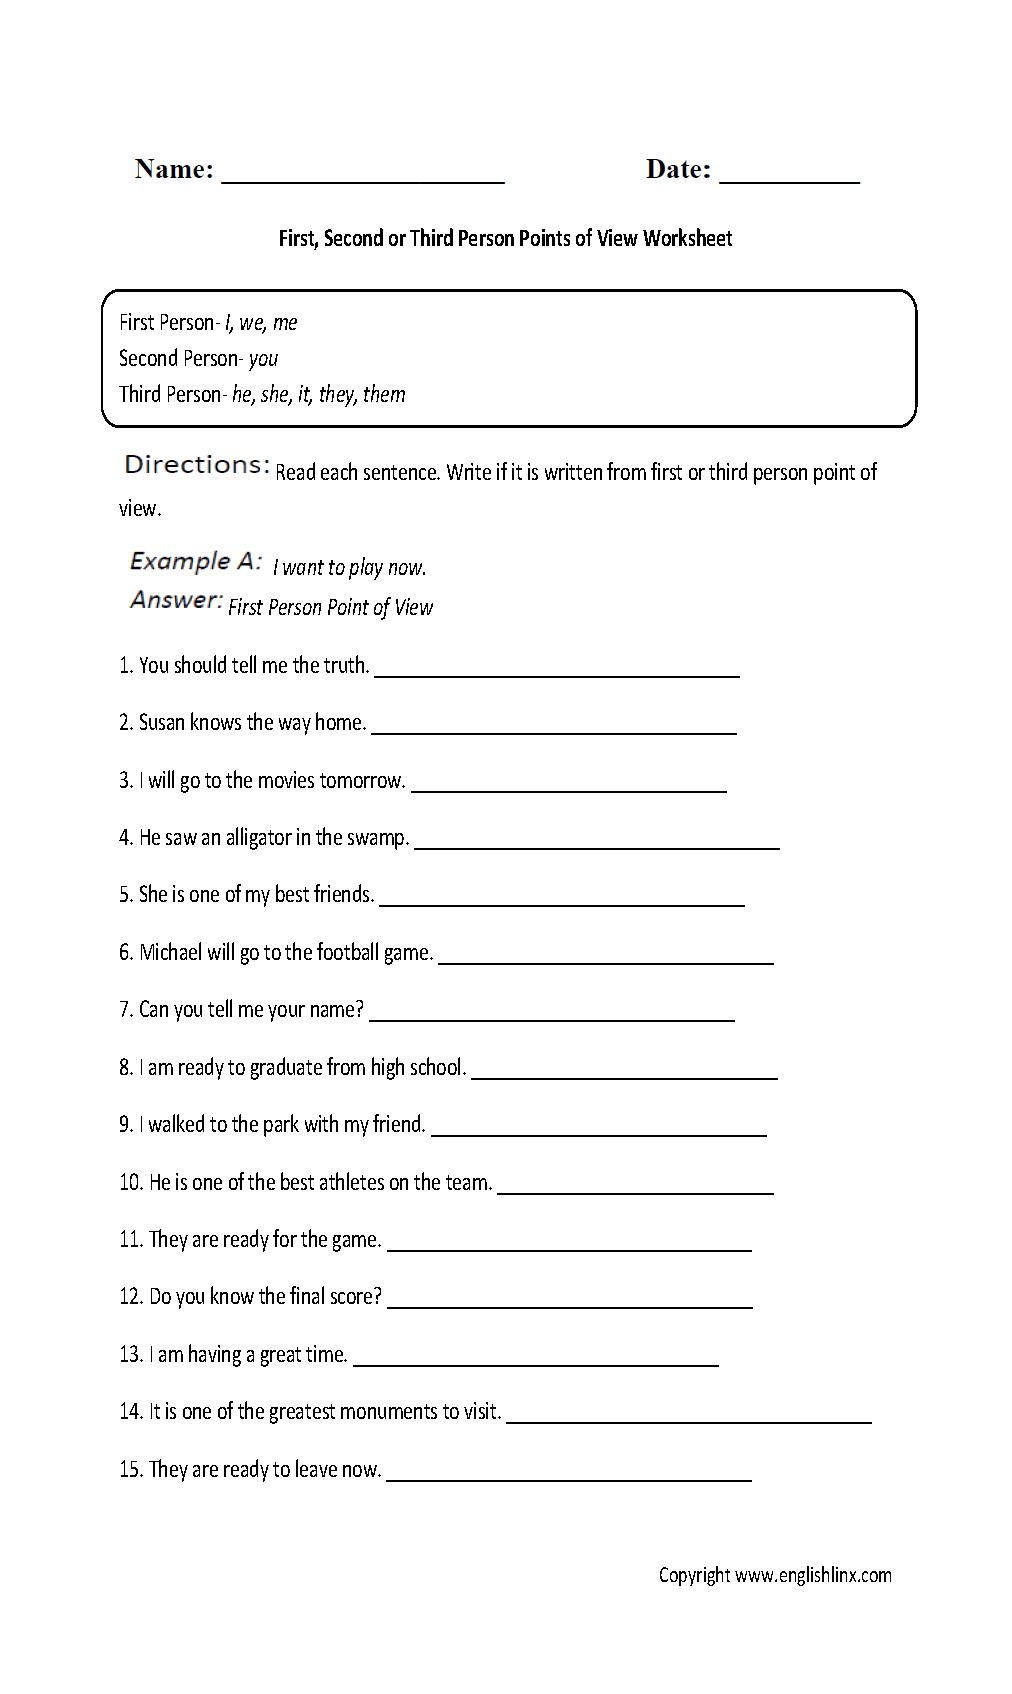 Proatmealus  Seductive Englishlinxcom  Point Of View Worksheets With Handsome Point Of View Worksheet With Charming Second Grade Word Problems Worksheet Also Year  English Worksheets In Addition Handwriting Cursive Practice Worksheets And Nd Grade Math Word Problems Printable Worksheets As Well As Maori Worksheets Additionally Jobs Esl Worksheet From Englishlinxcom With Proatmealus  Handsome Englishlinxcom  Point Of View Worksheets With Charming Point Of View Worksheet And Seductive Second Grade Word Problems Worksheet Also Year  English Worksheets In Addition Handwriting Cursive Practice Worksheets From Englishlinxcom